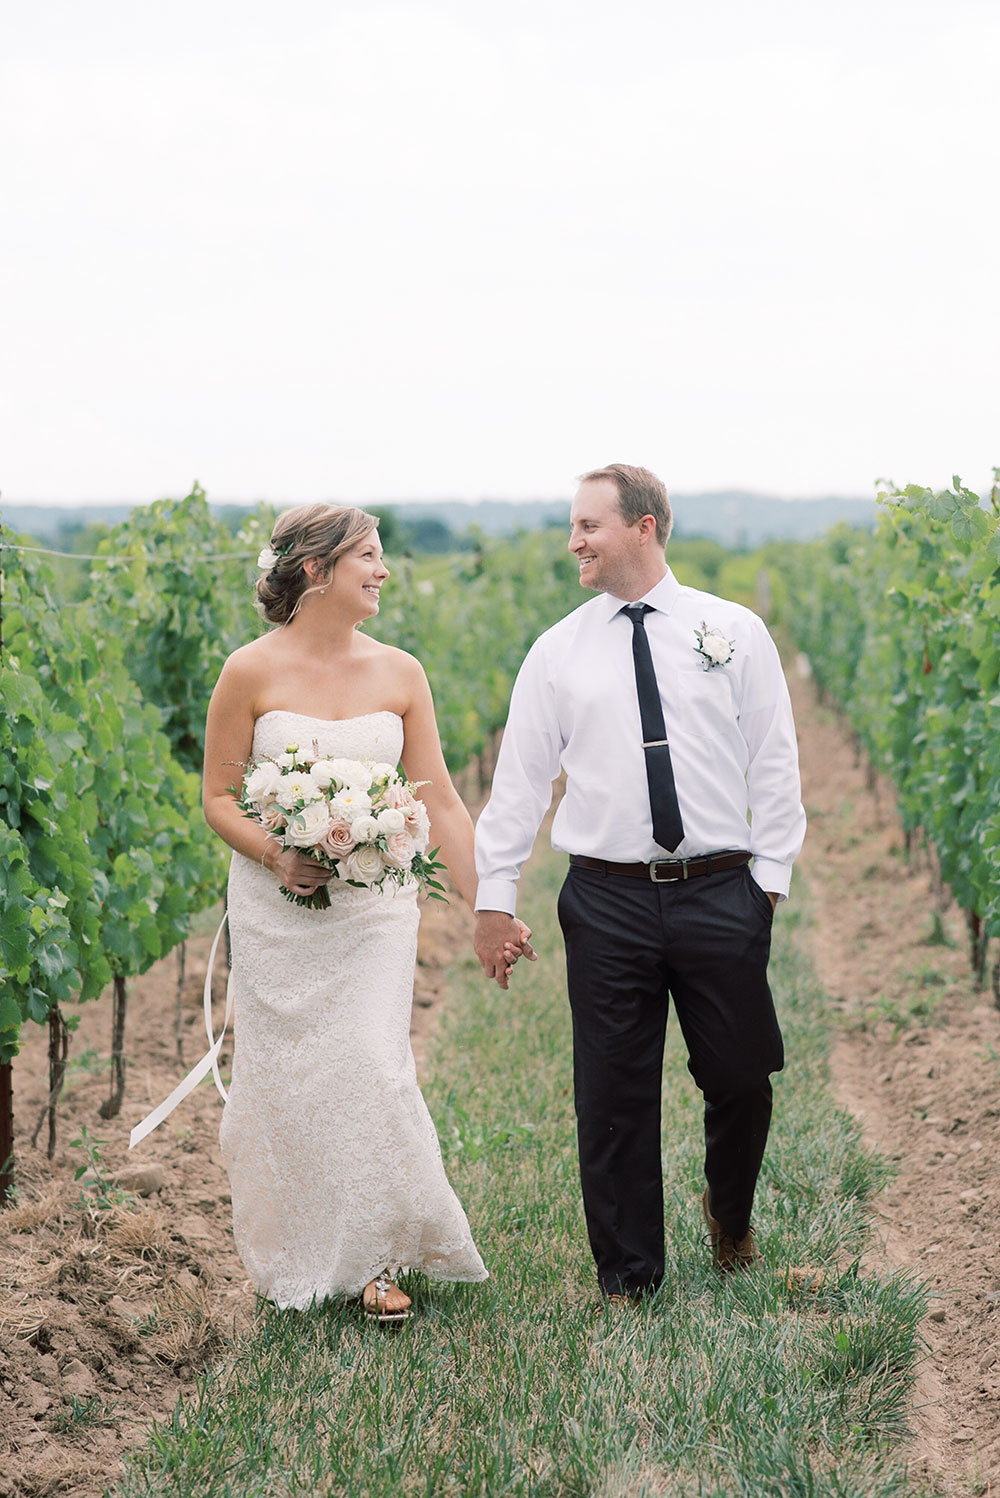 Niagara-on-the-Lake-Elopement-Vineyard-Bride-photo-by-Emily-Jean-Photography-0023.JPG